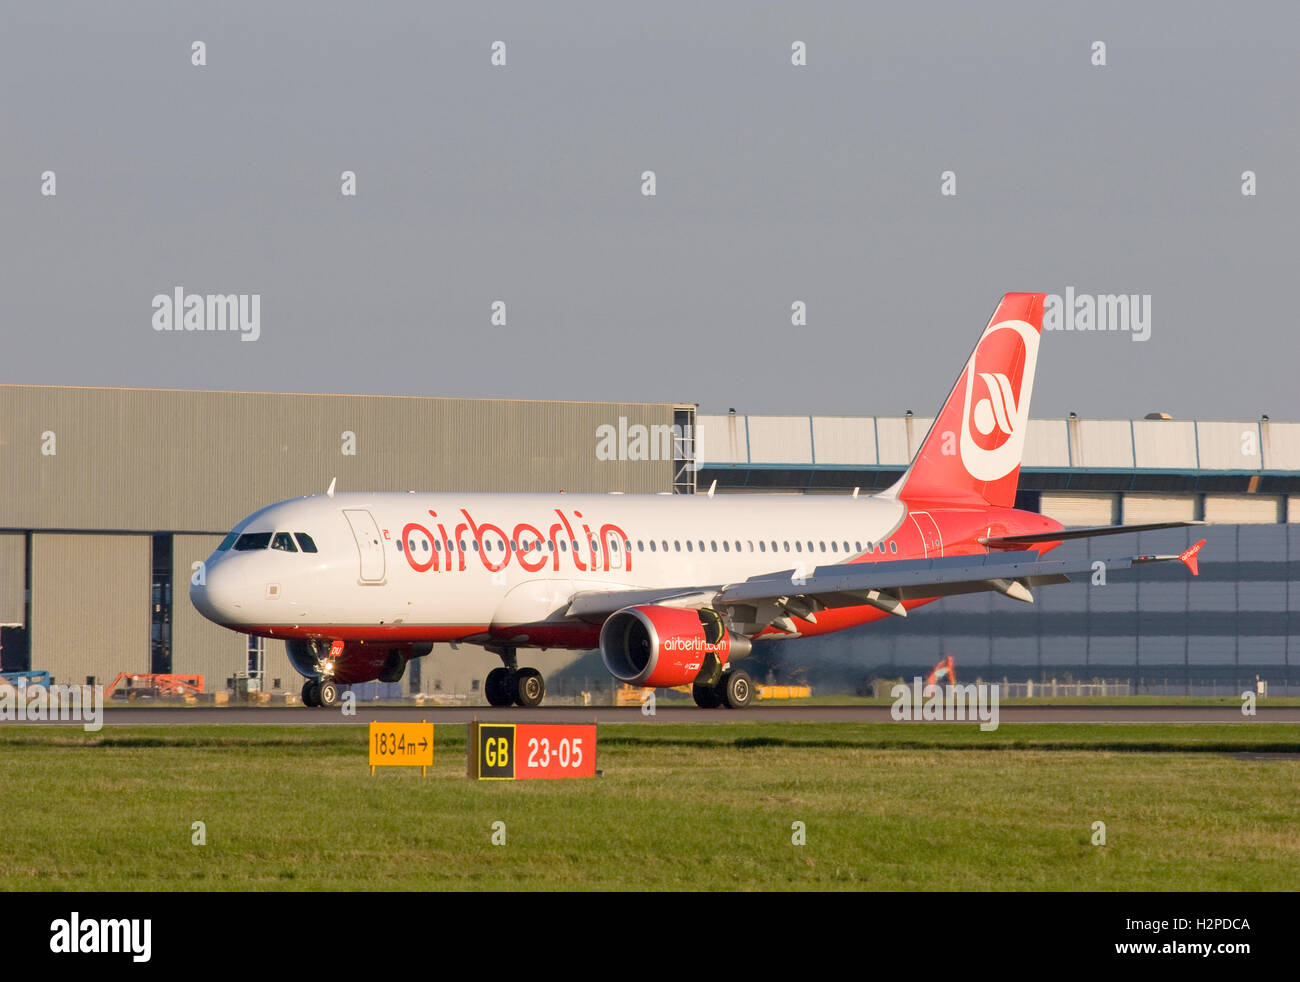 Air Berlin Airbus A320-214 aircraft landing at London Stansted airport. - Stock Image